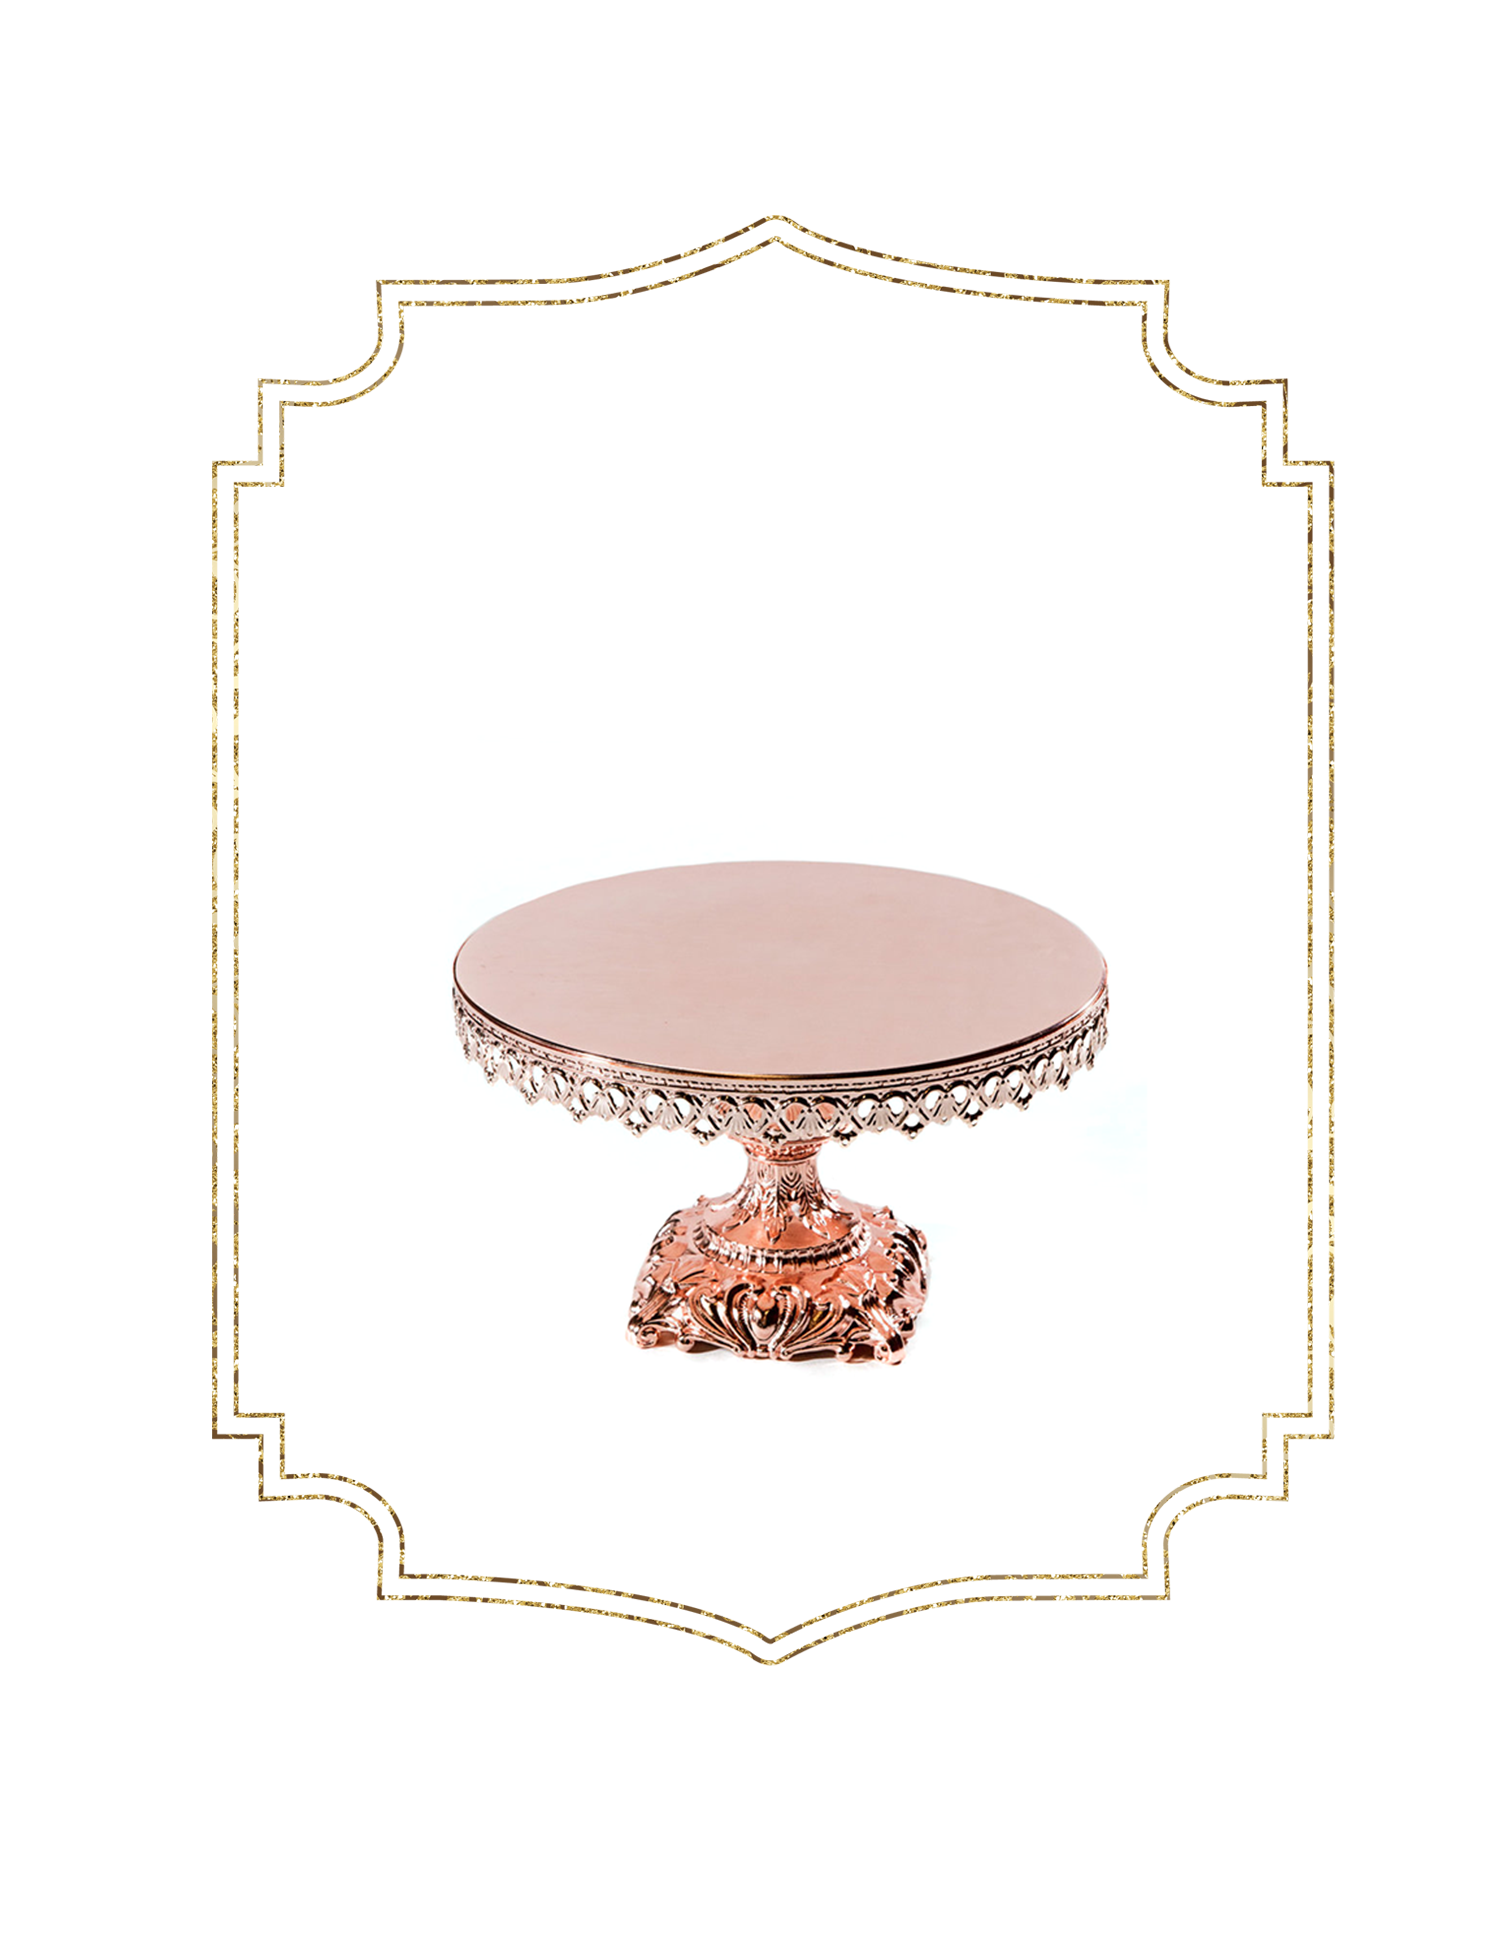 SHOP-preview SHINY ROSE GOLD baroque cake stand opulent treasures.png